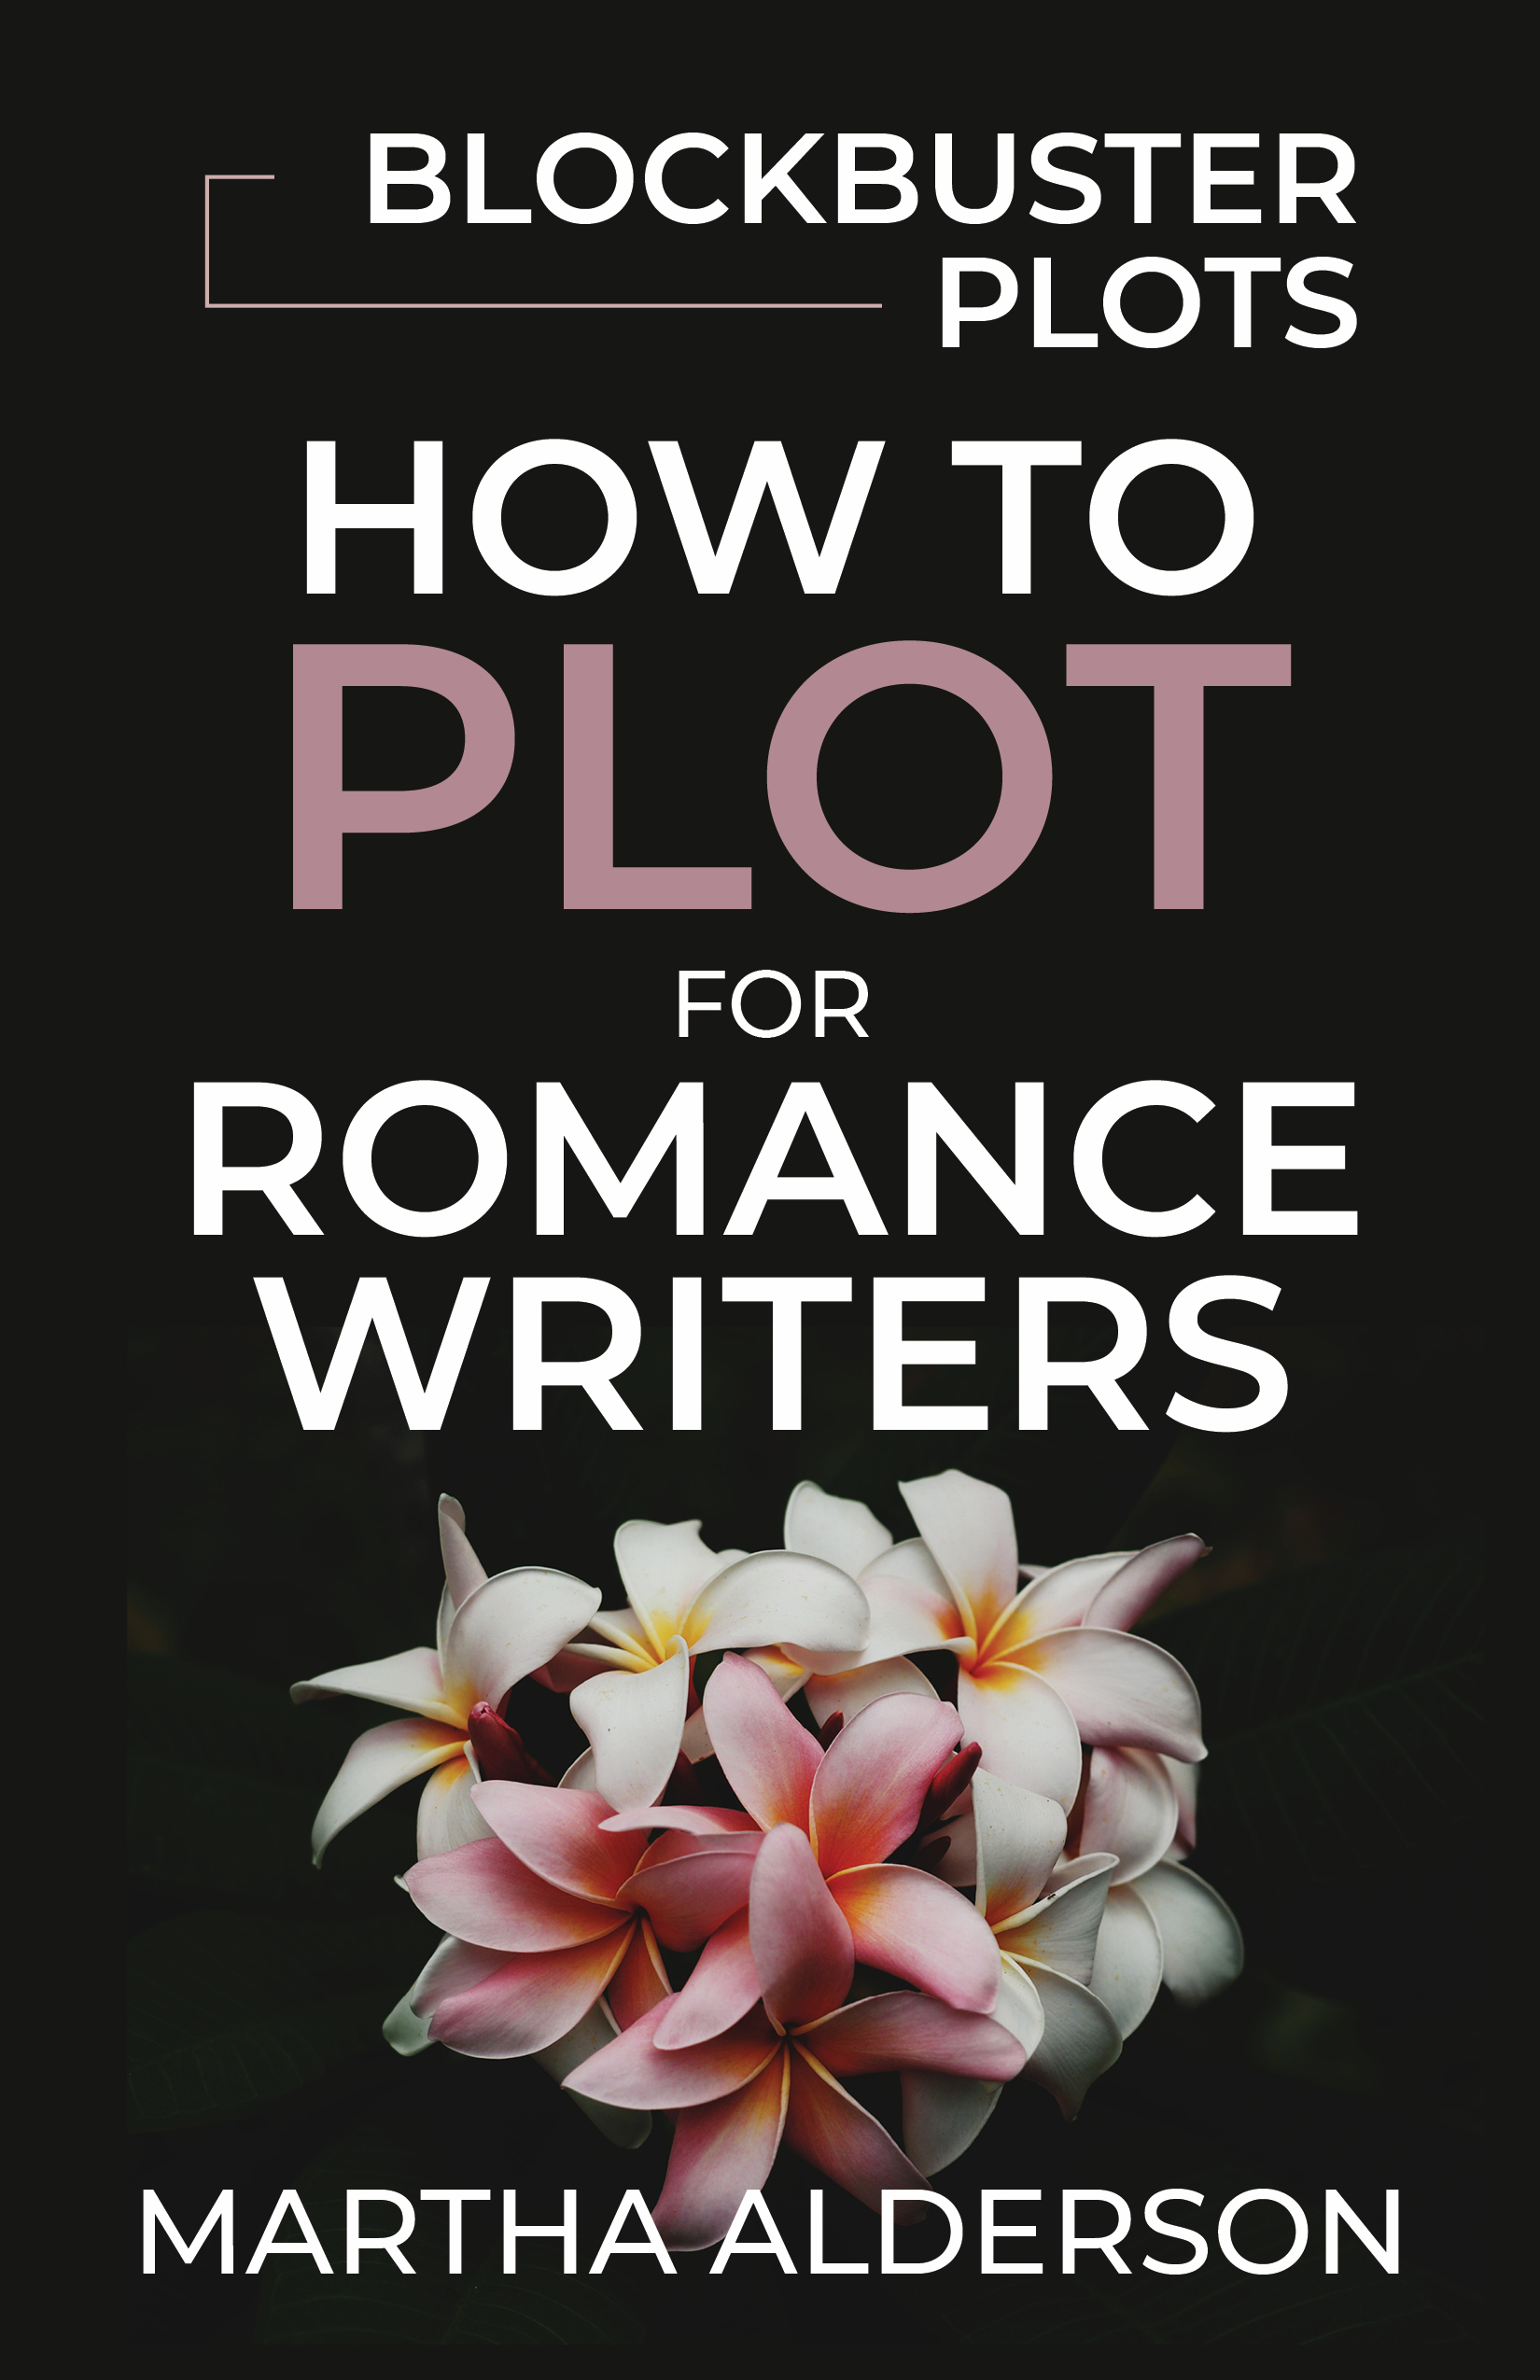 Blockbuster Plots How to Plot for Romance Writers